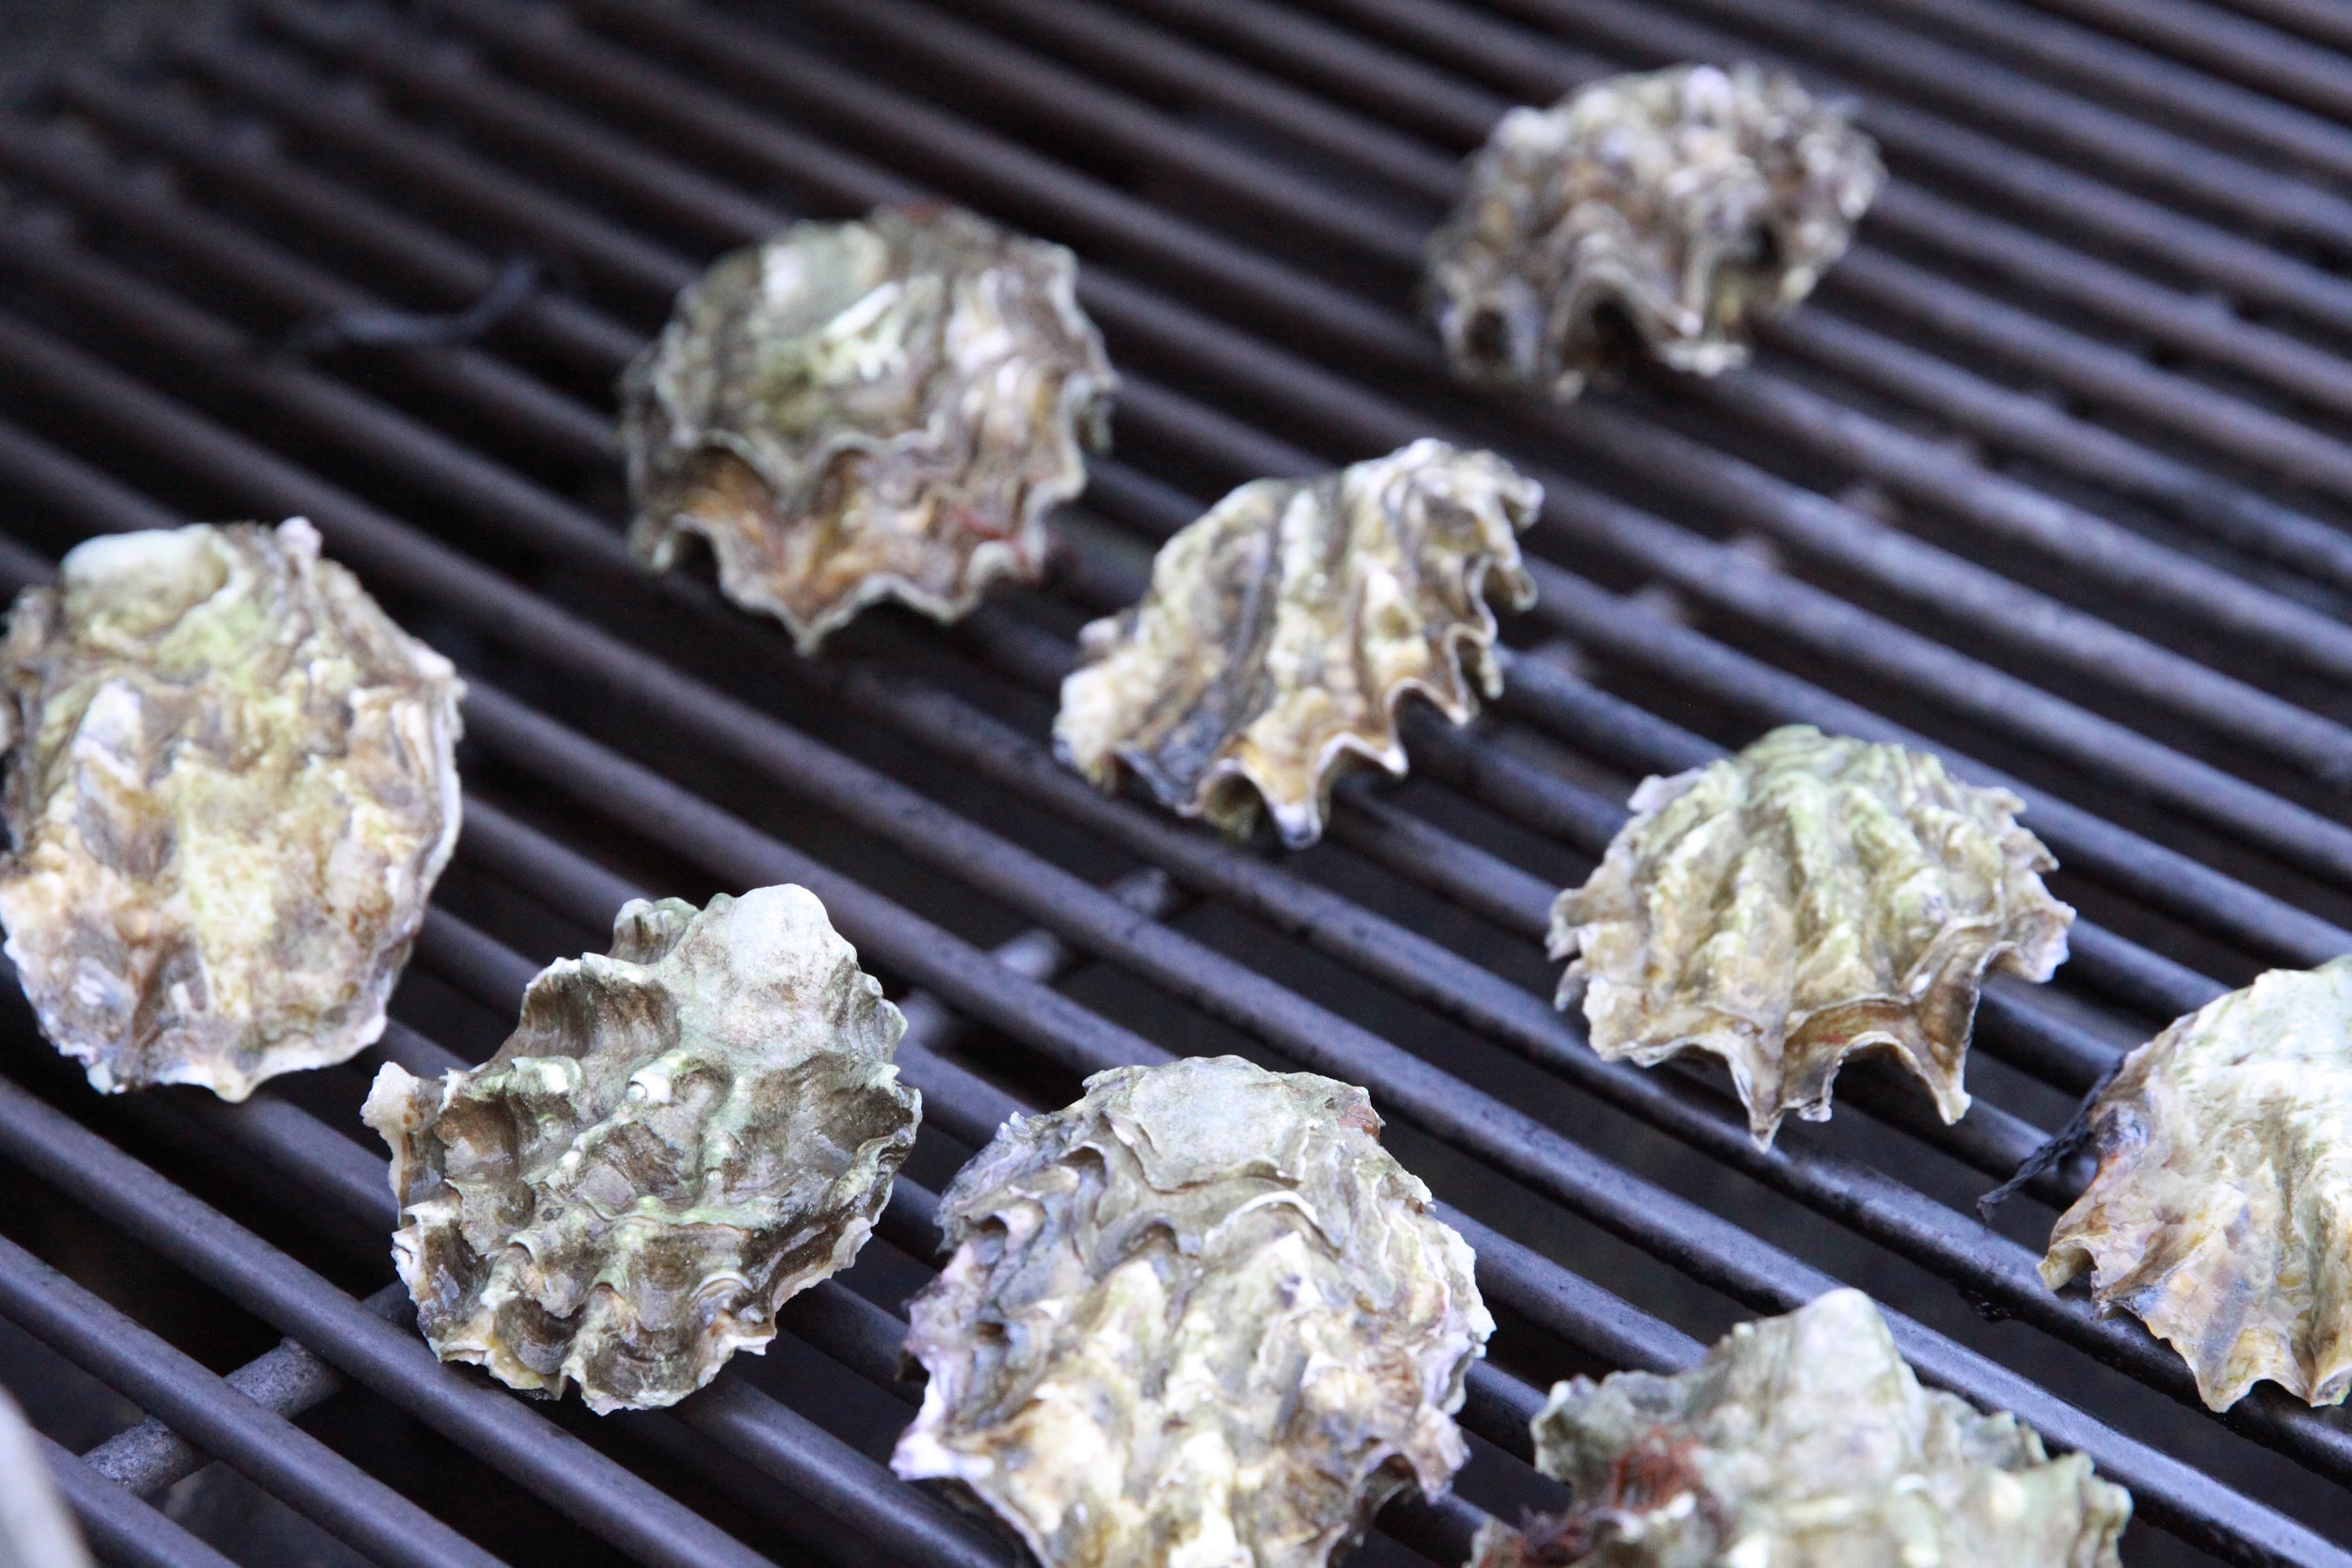 Grilled Oysters, Chicago, Illinois